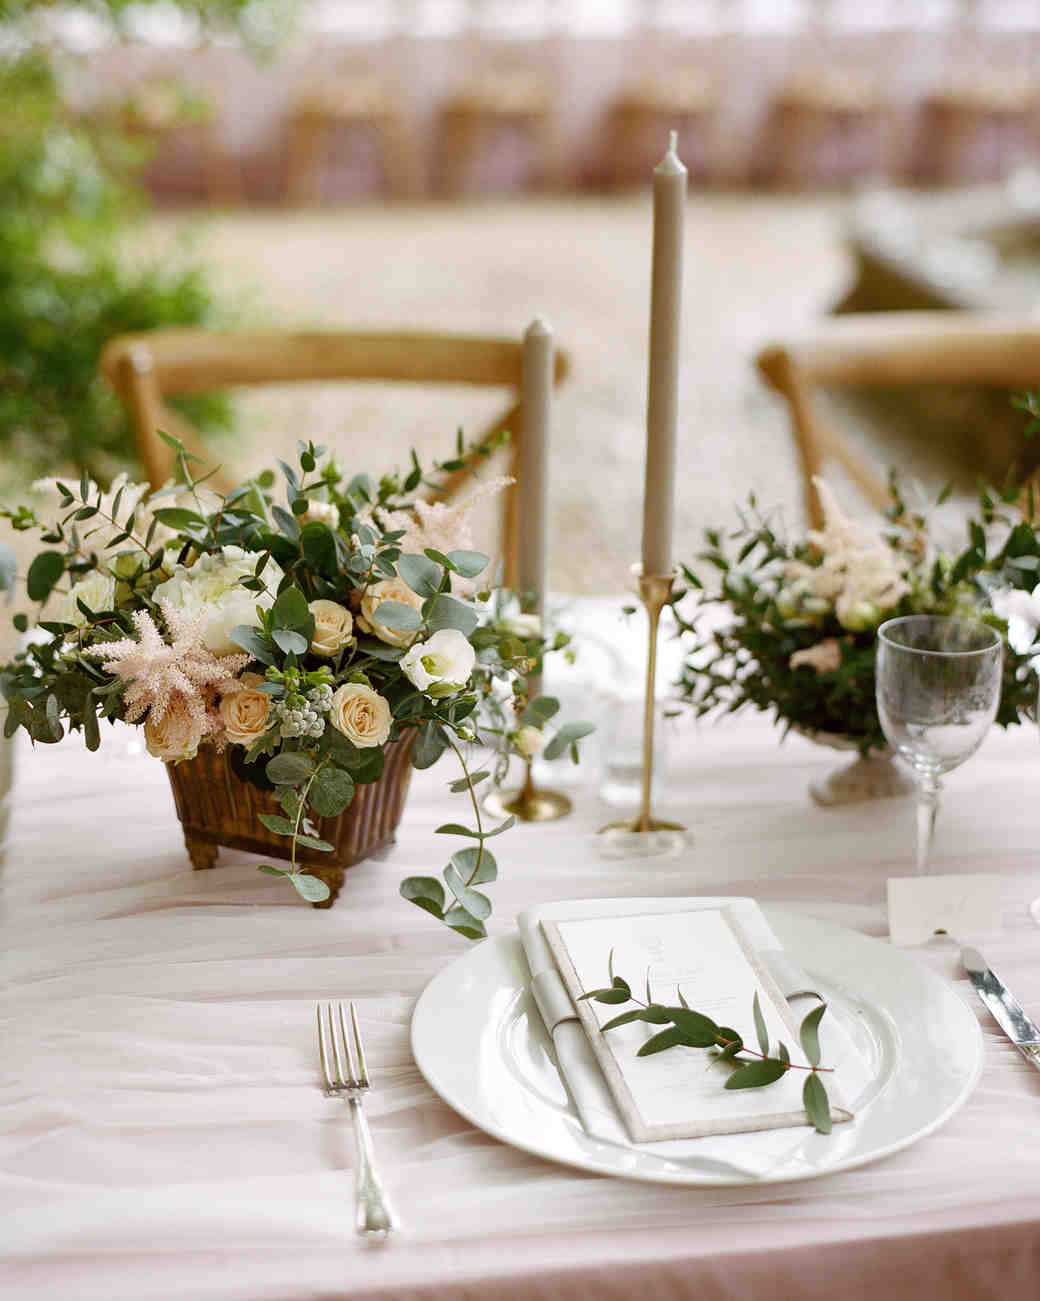 julie-chris-wedding-placesetting-1399-s12649-0216.jpg